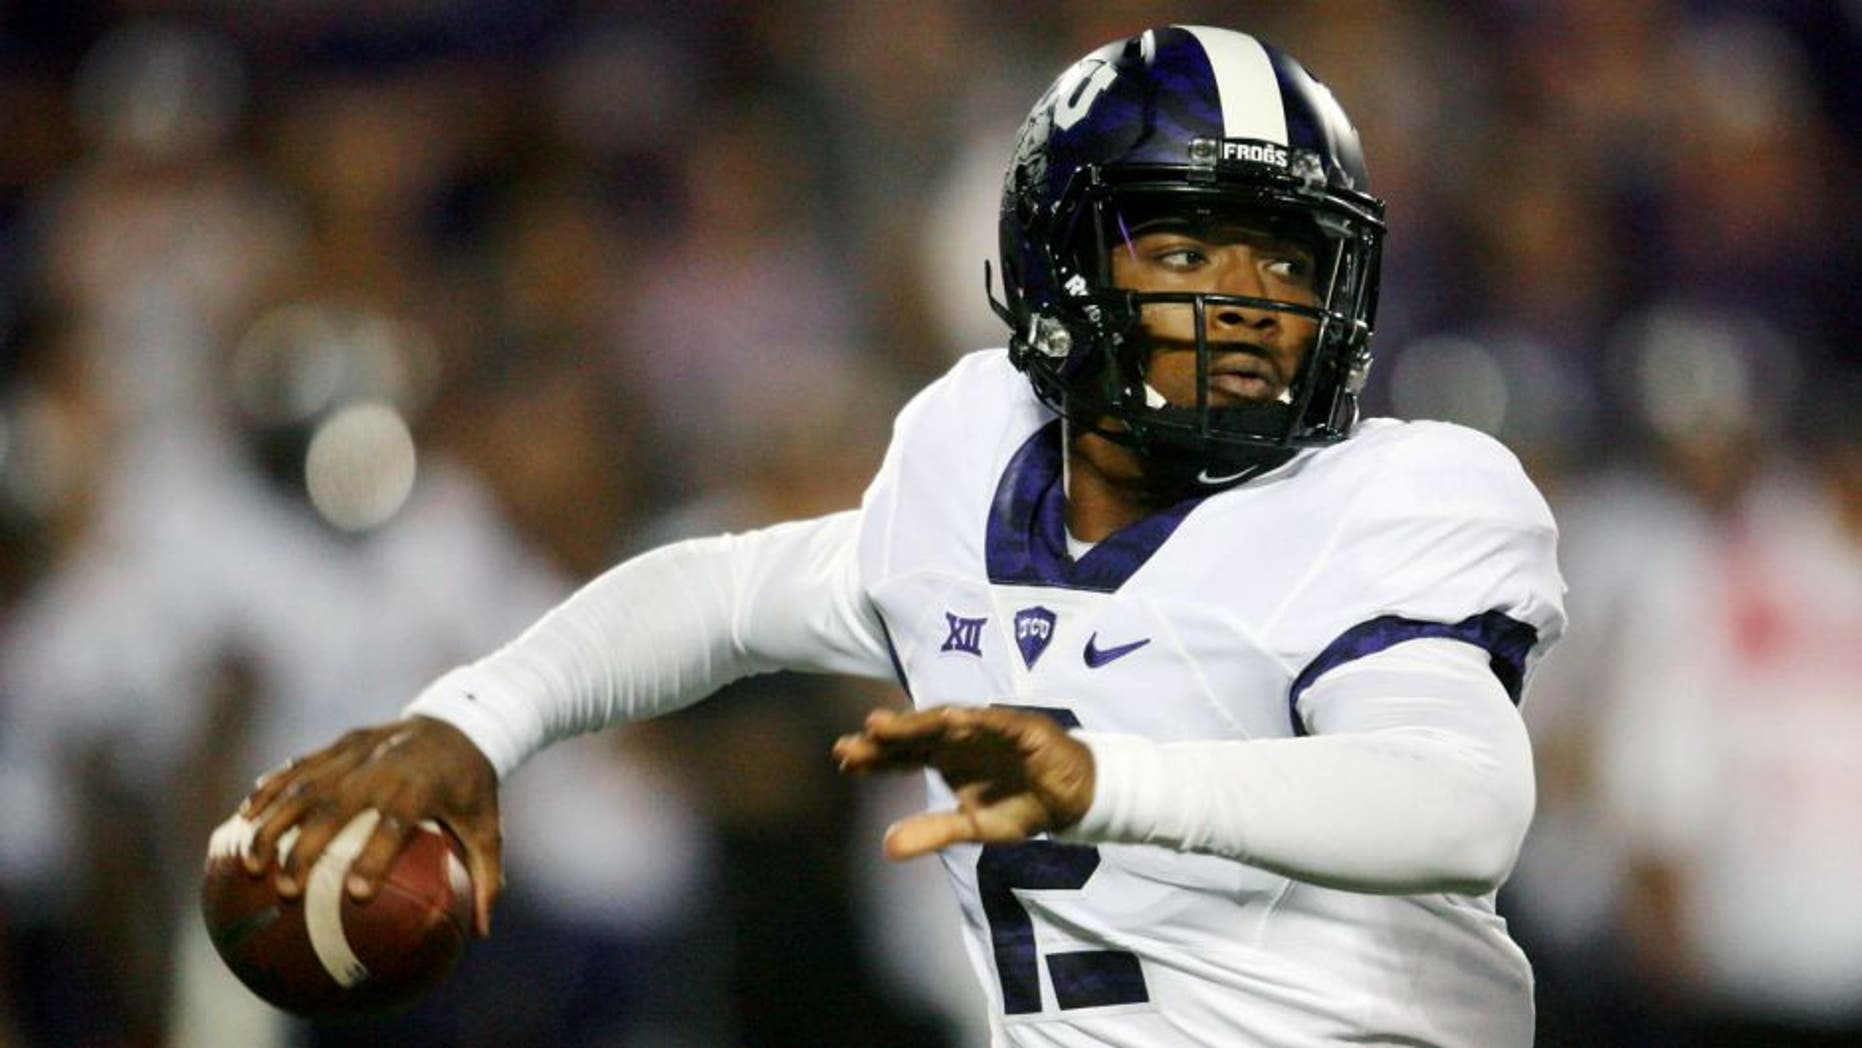 Oct 10, 2015; Manhattan, KS, USA; TCU Horned Frogs quarterback Trevone Boykin (2) drops back to pass during the game against the TCU Horned Frogs at Bill Snyder Family Football Stadium. Mandatory Credit: Scott Sewell-USA TODAY Sports